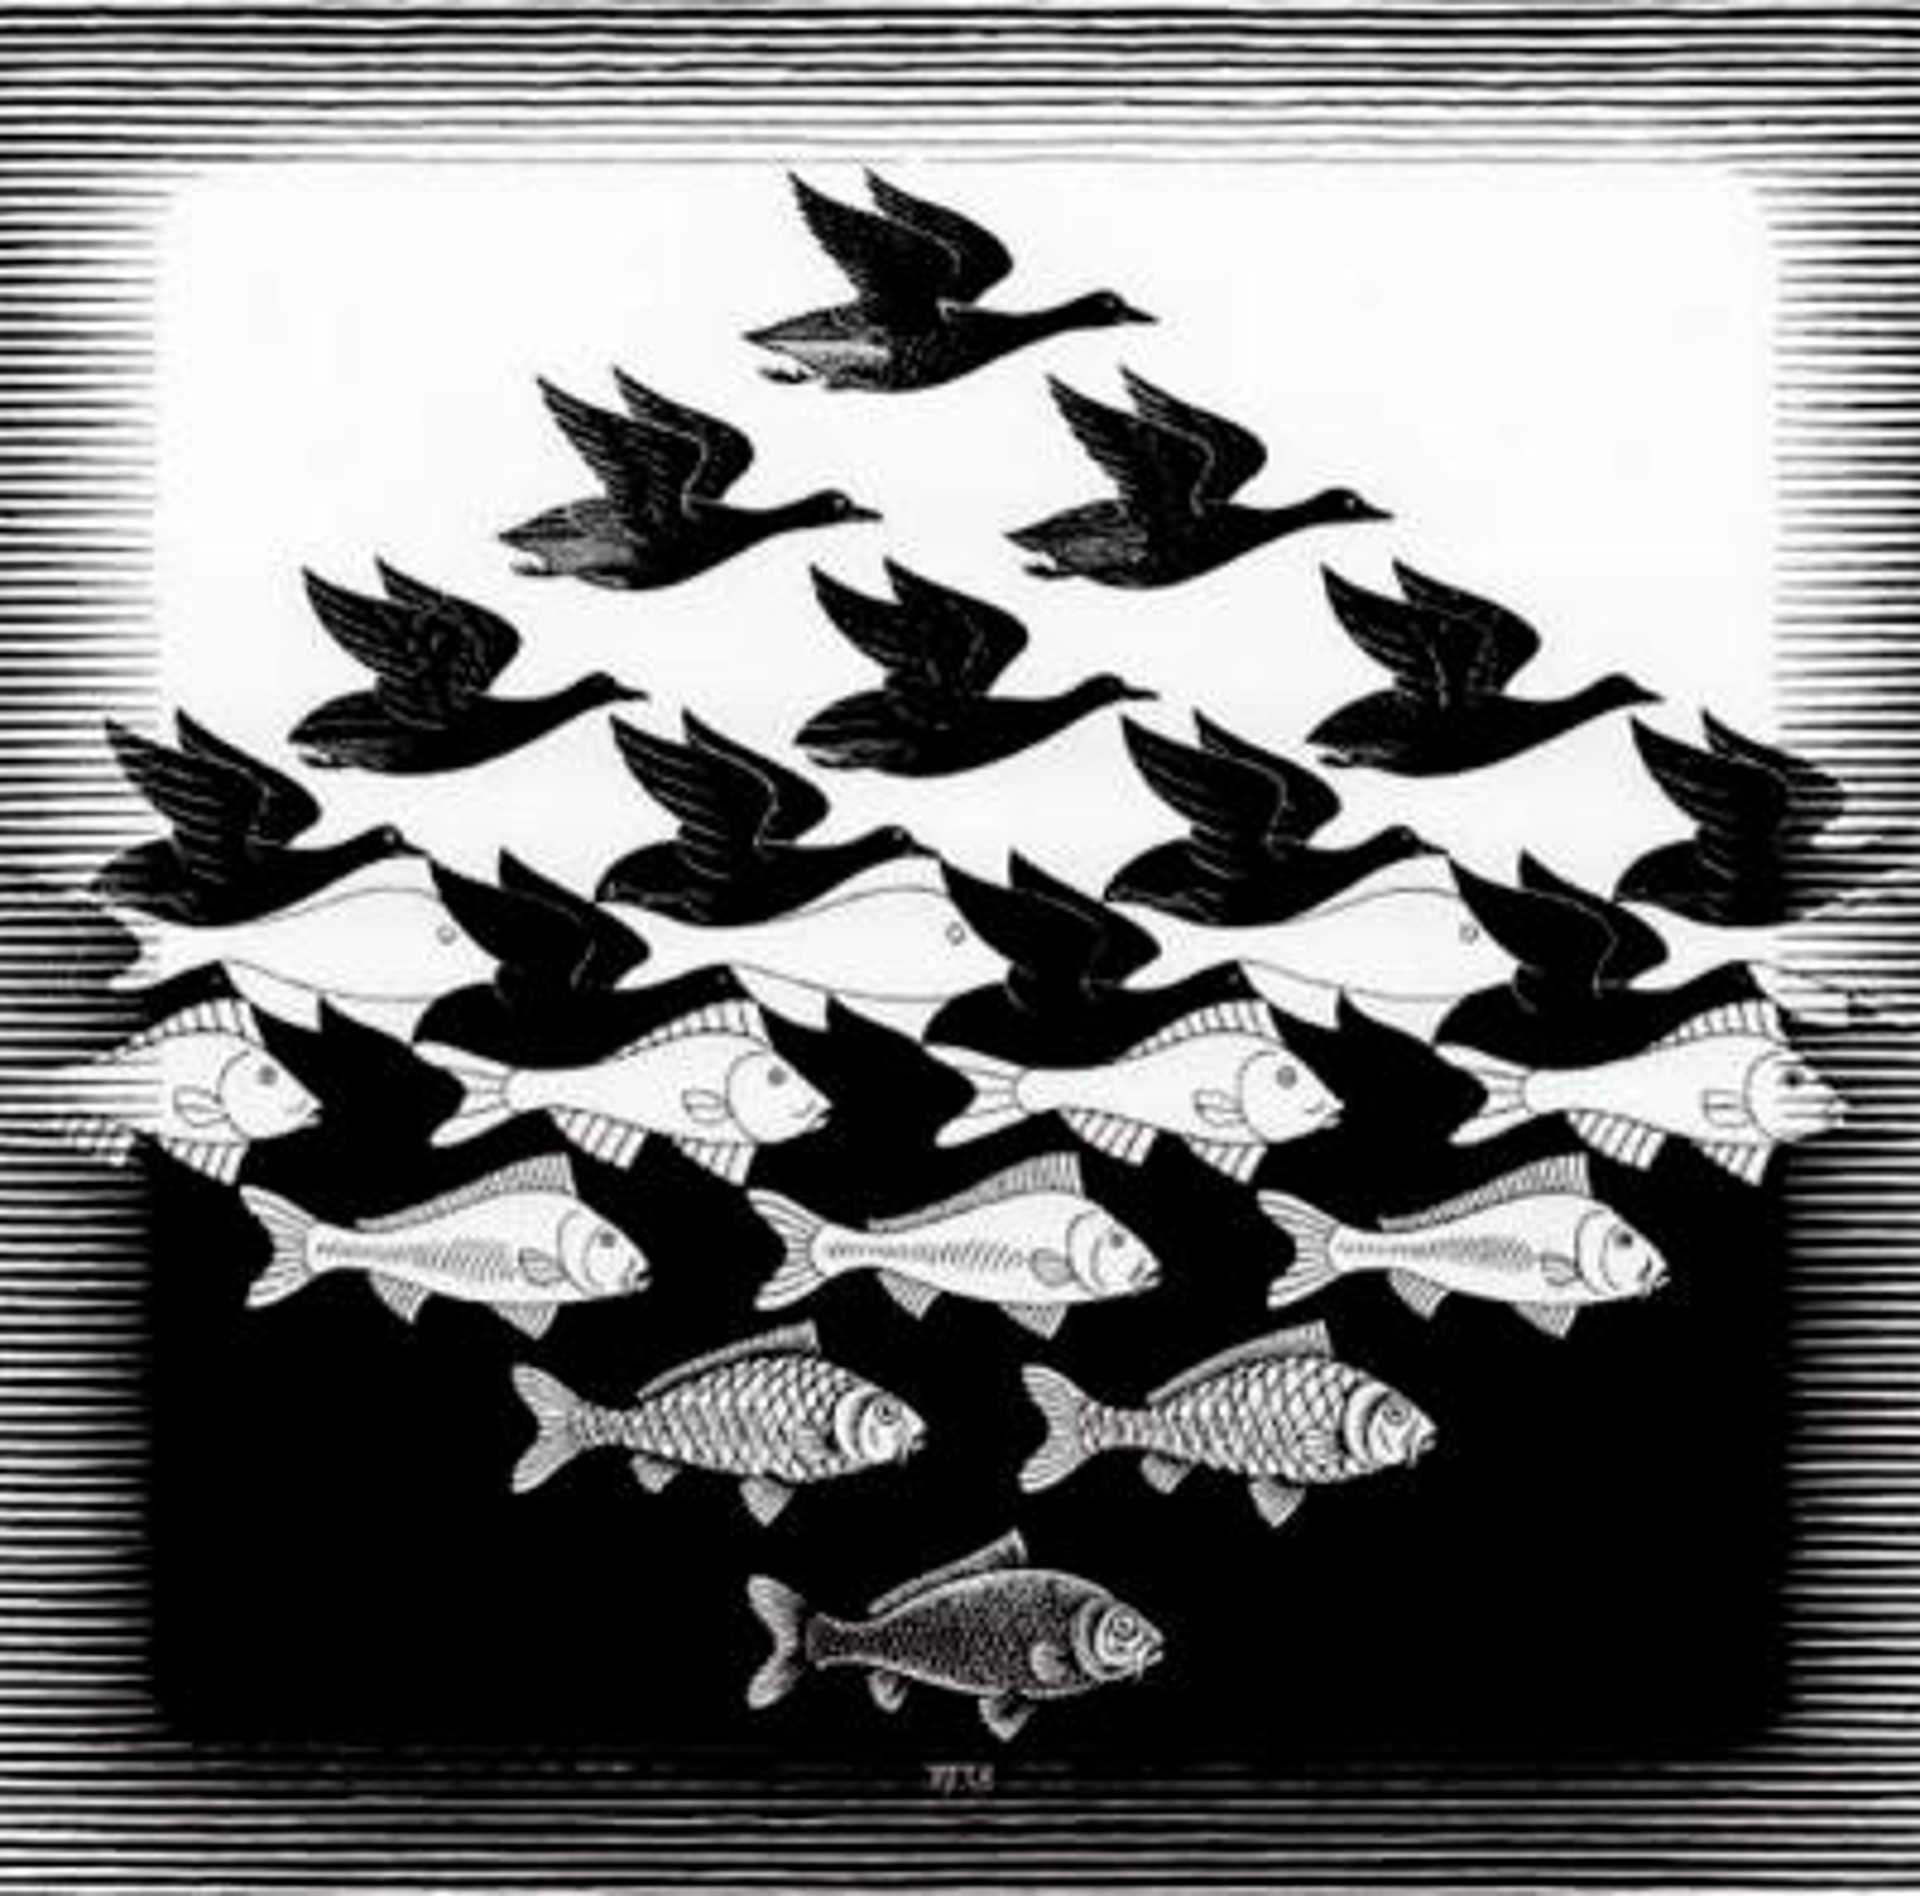 Sky and Water I by M.C. Escher